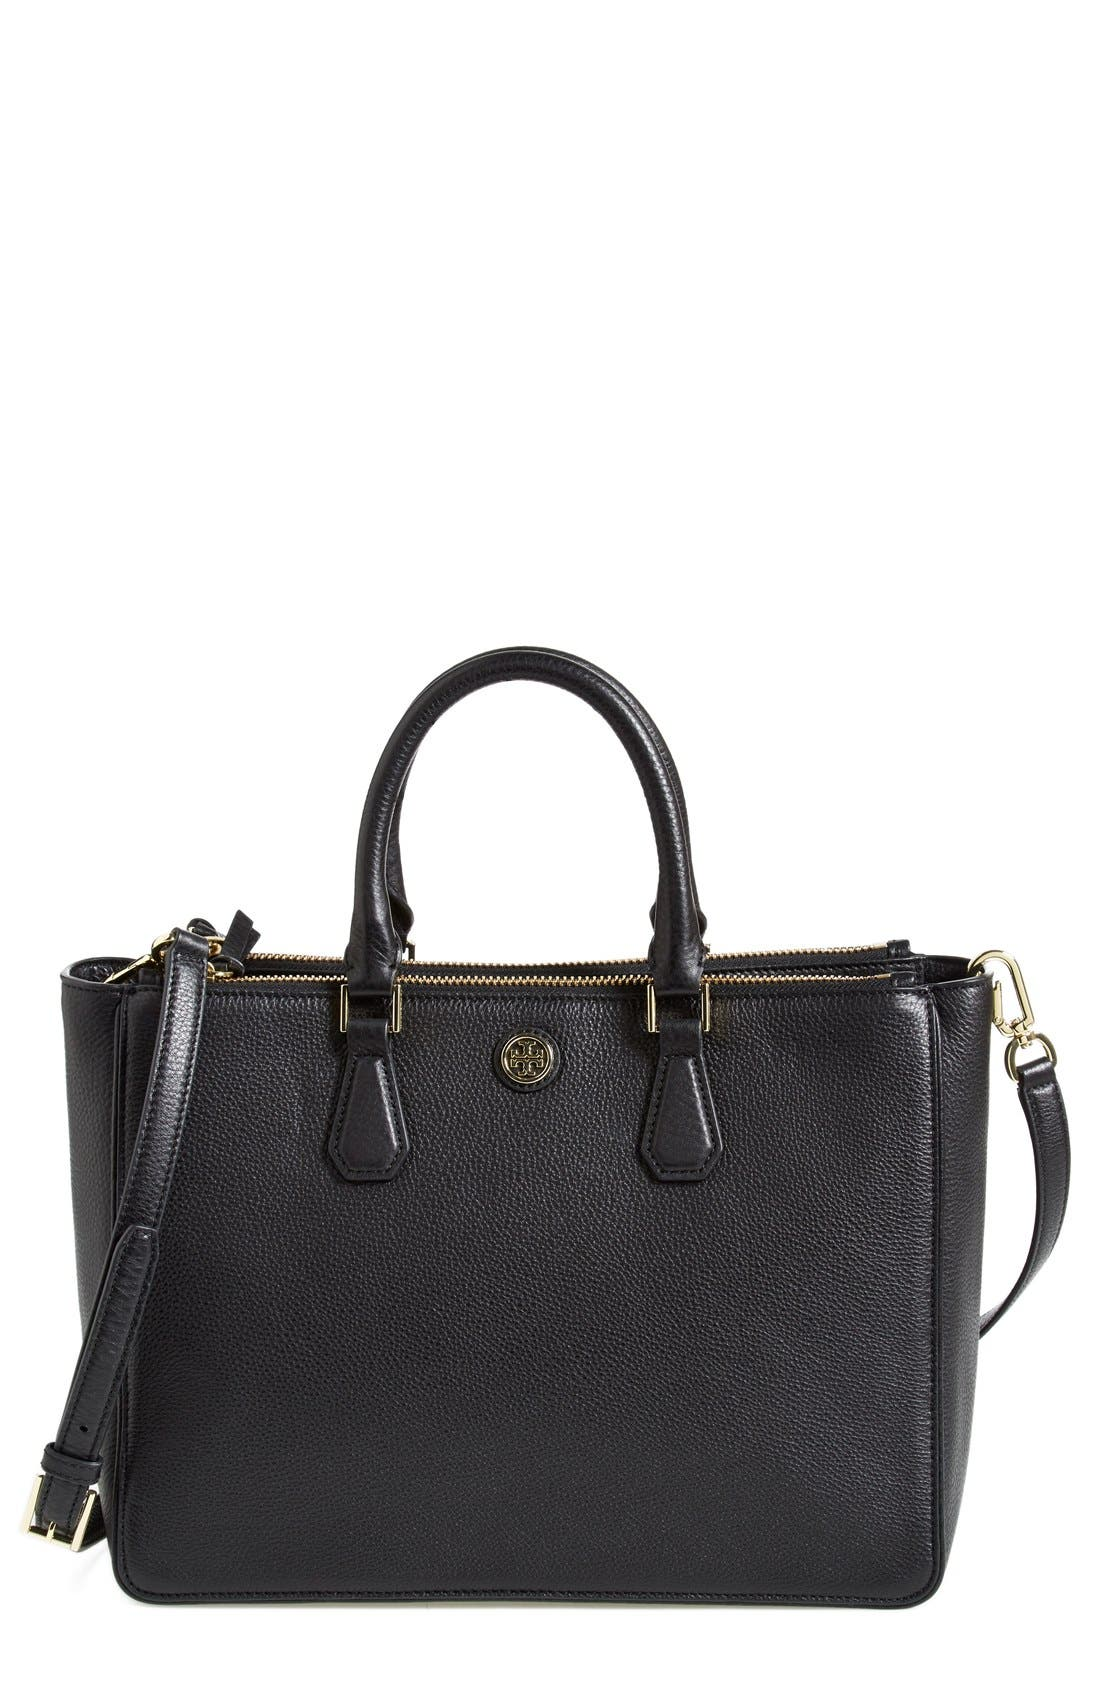 Alternate Image 1 Selected - Tory Burch 'Robinson' Pebbled Leather Double Zip Tote